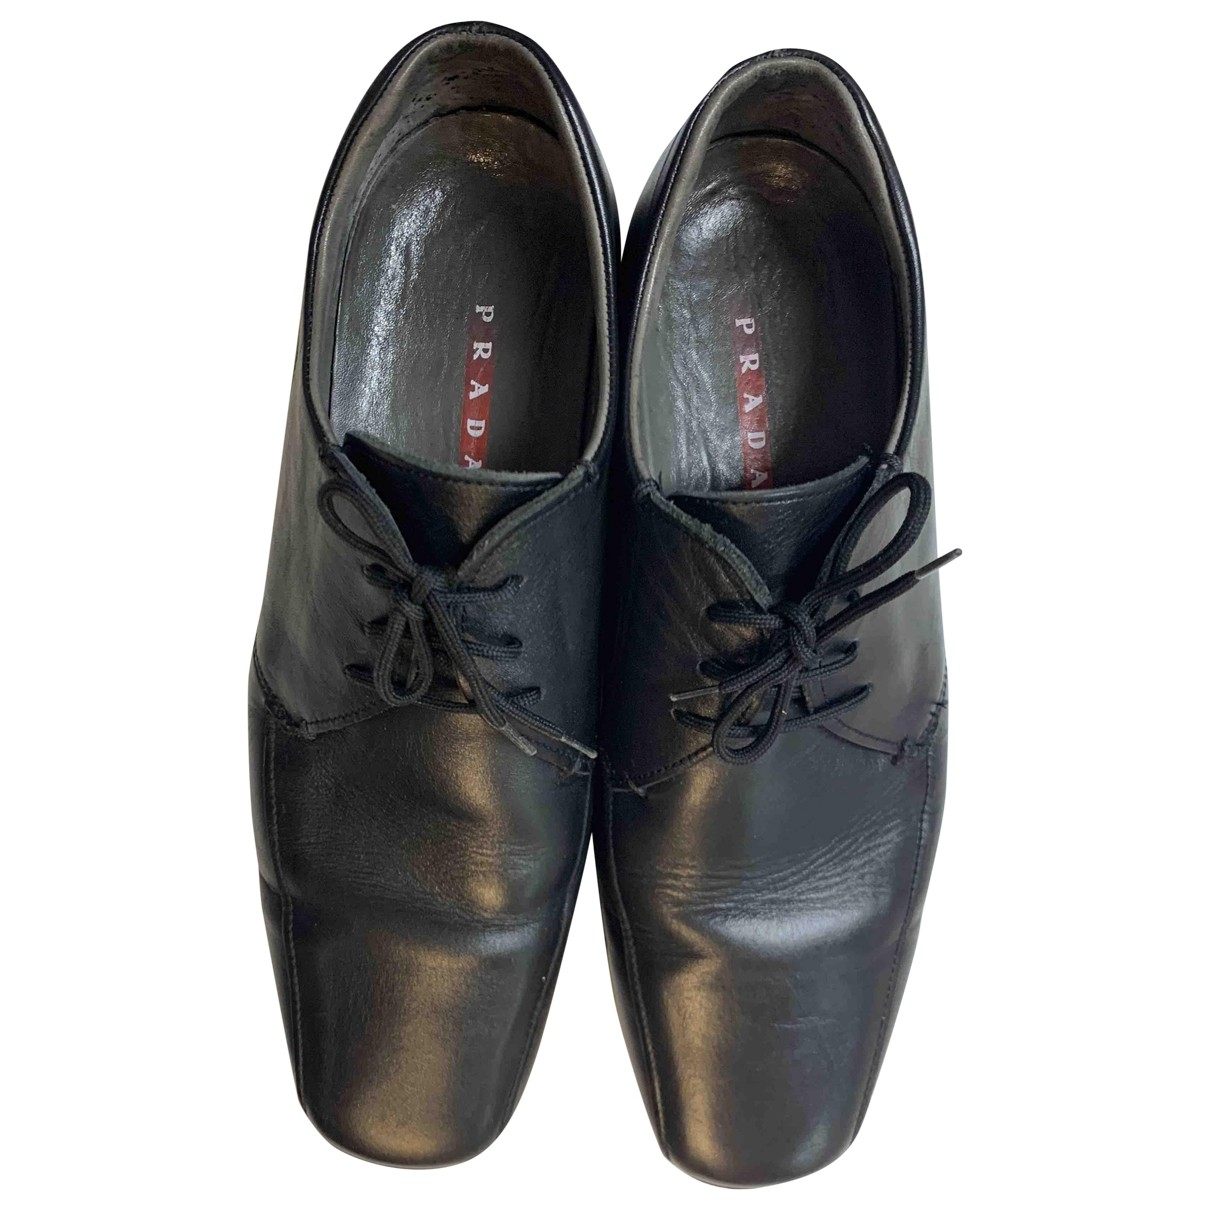 Prada \N Black Leather Lace ups for Men 42.5 EU